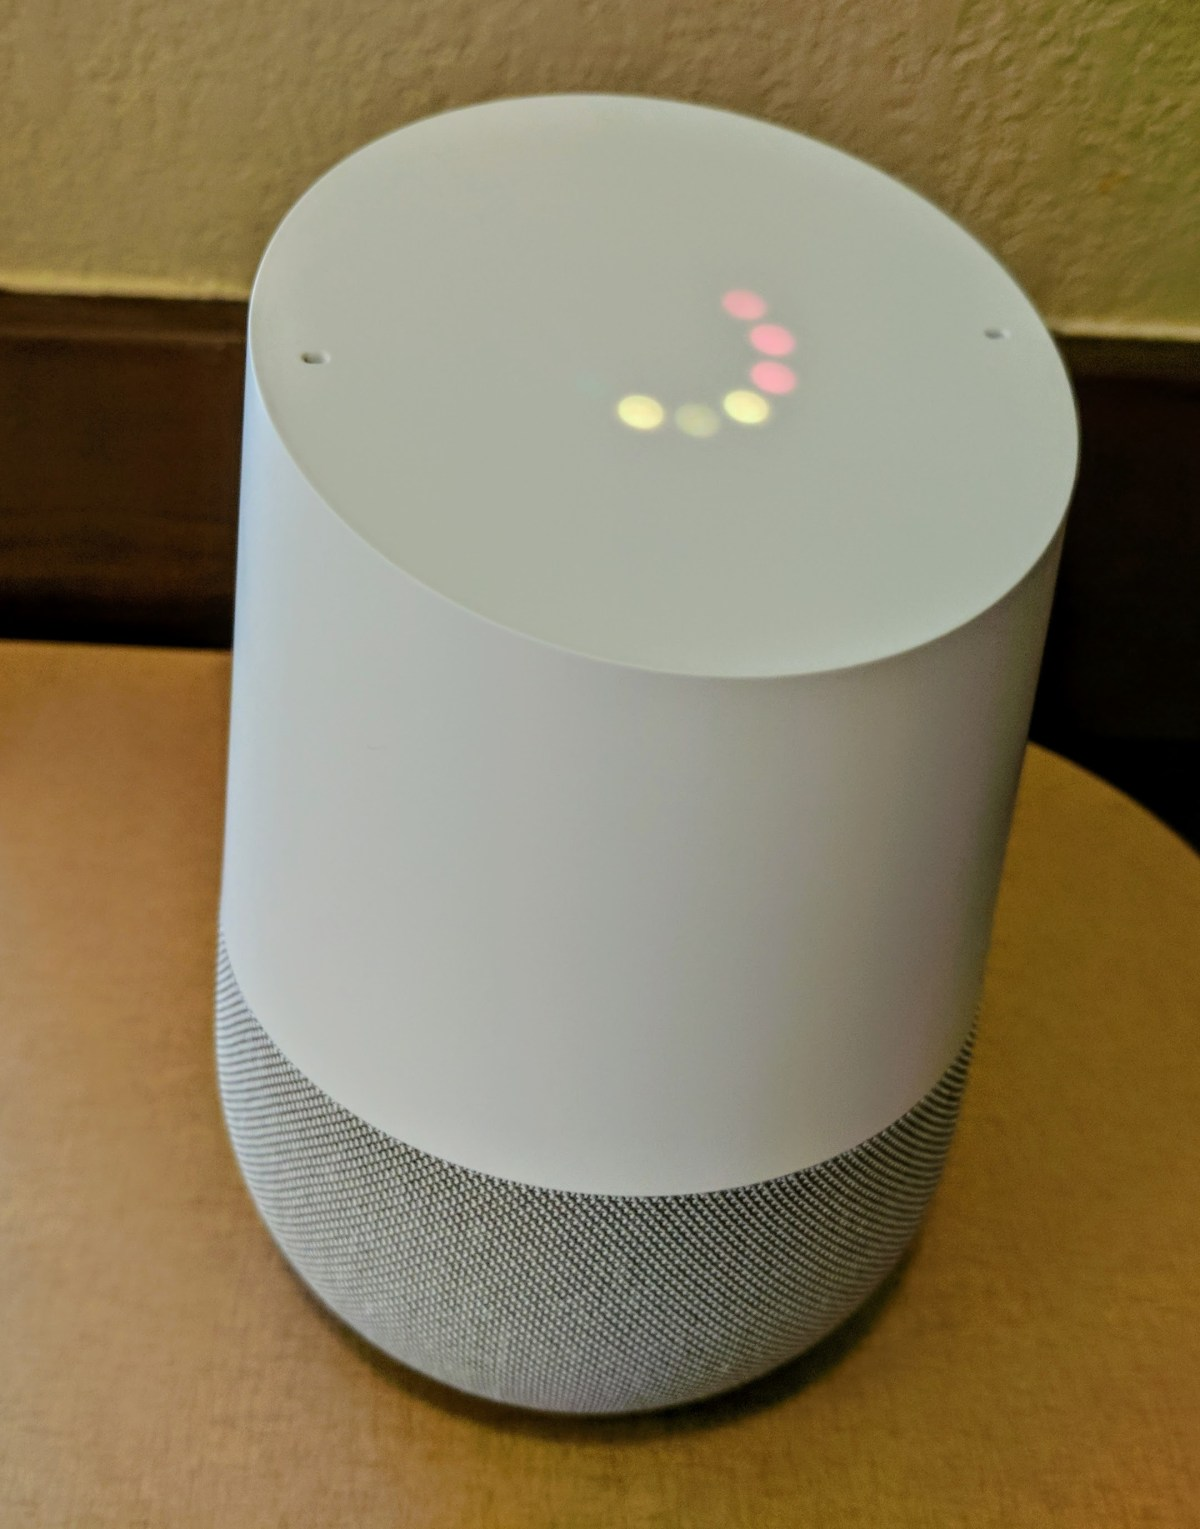 google home volume indicators